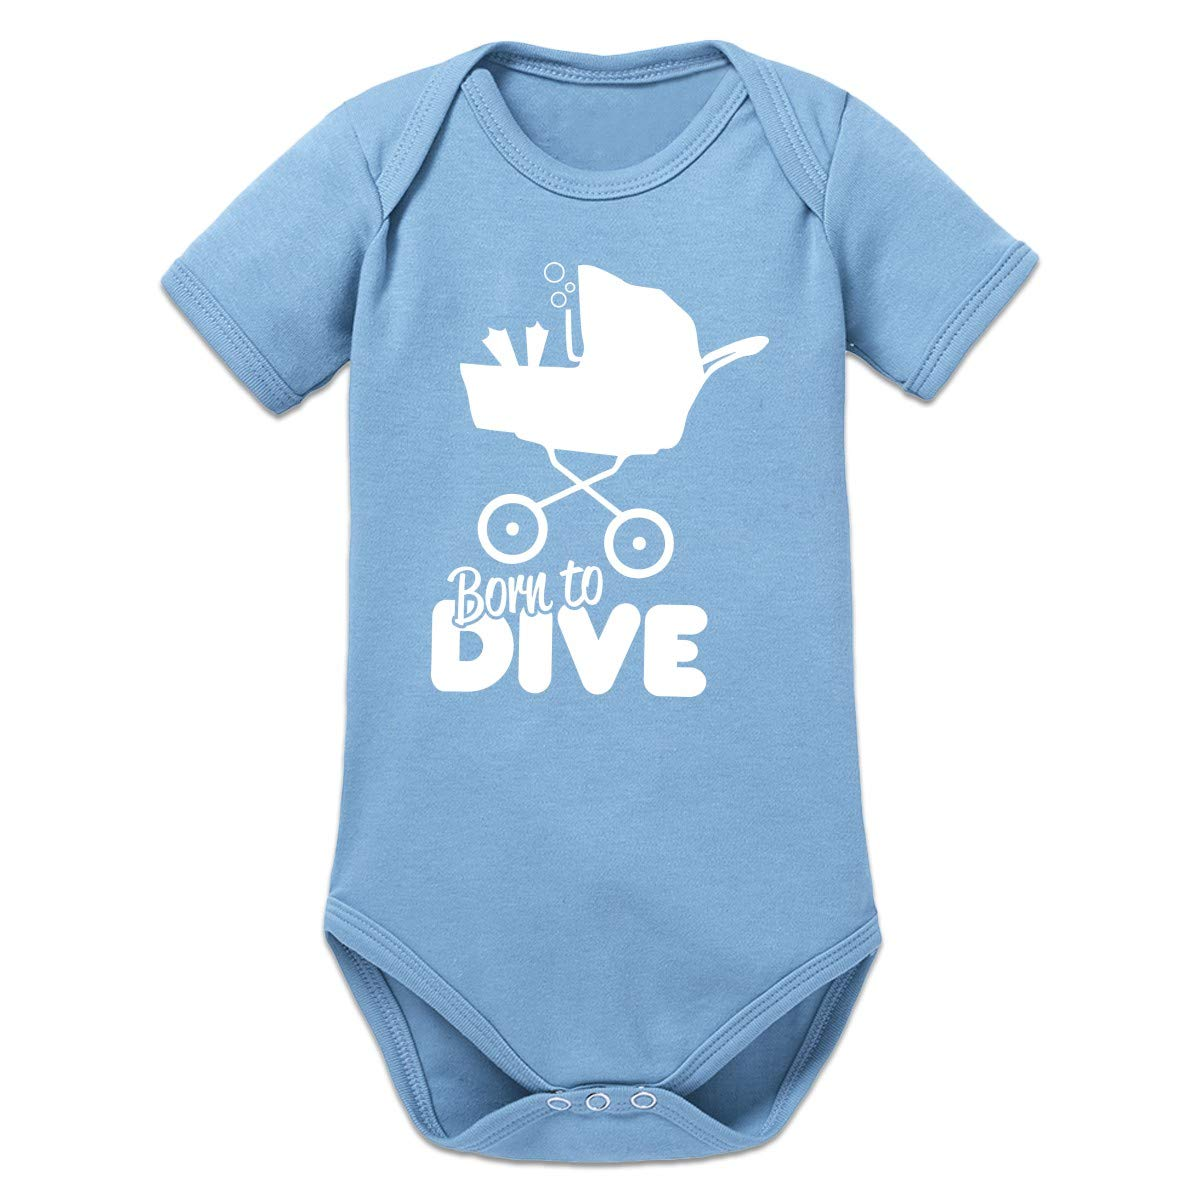 Shirtcity Born To Dive Baby Strampler by